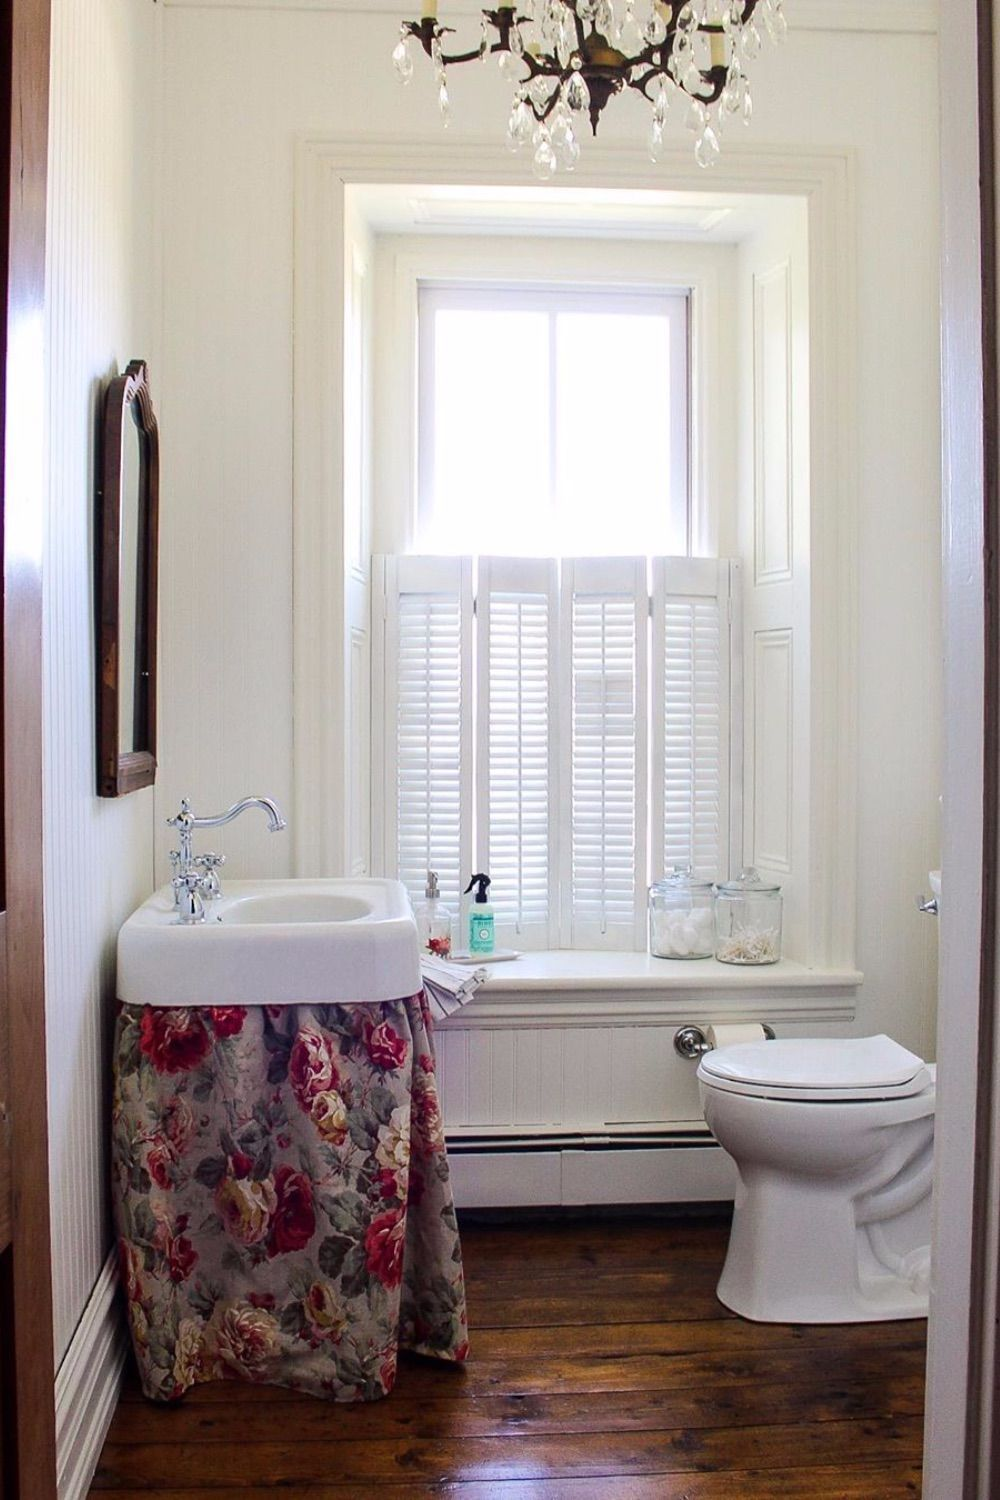 Guest Bathroom Ideas That Are Easy To Do Swankyden Com 2020 In 2020 Guest Bathrooms Guest Bathroom Kids Bathroom